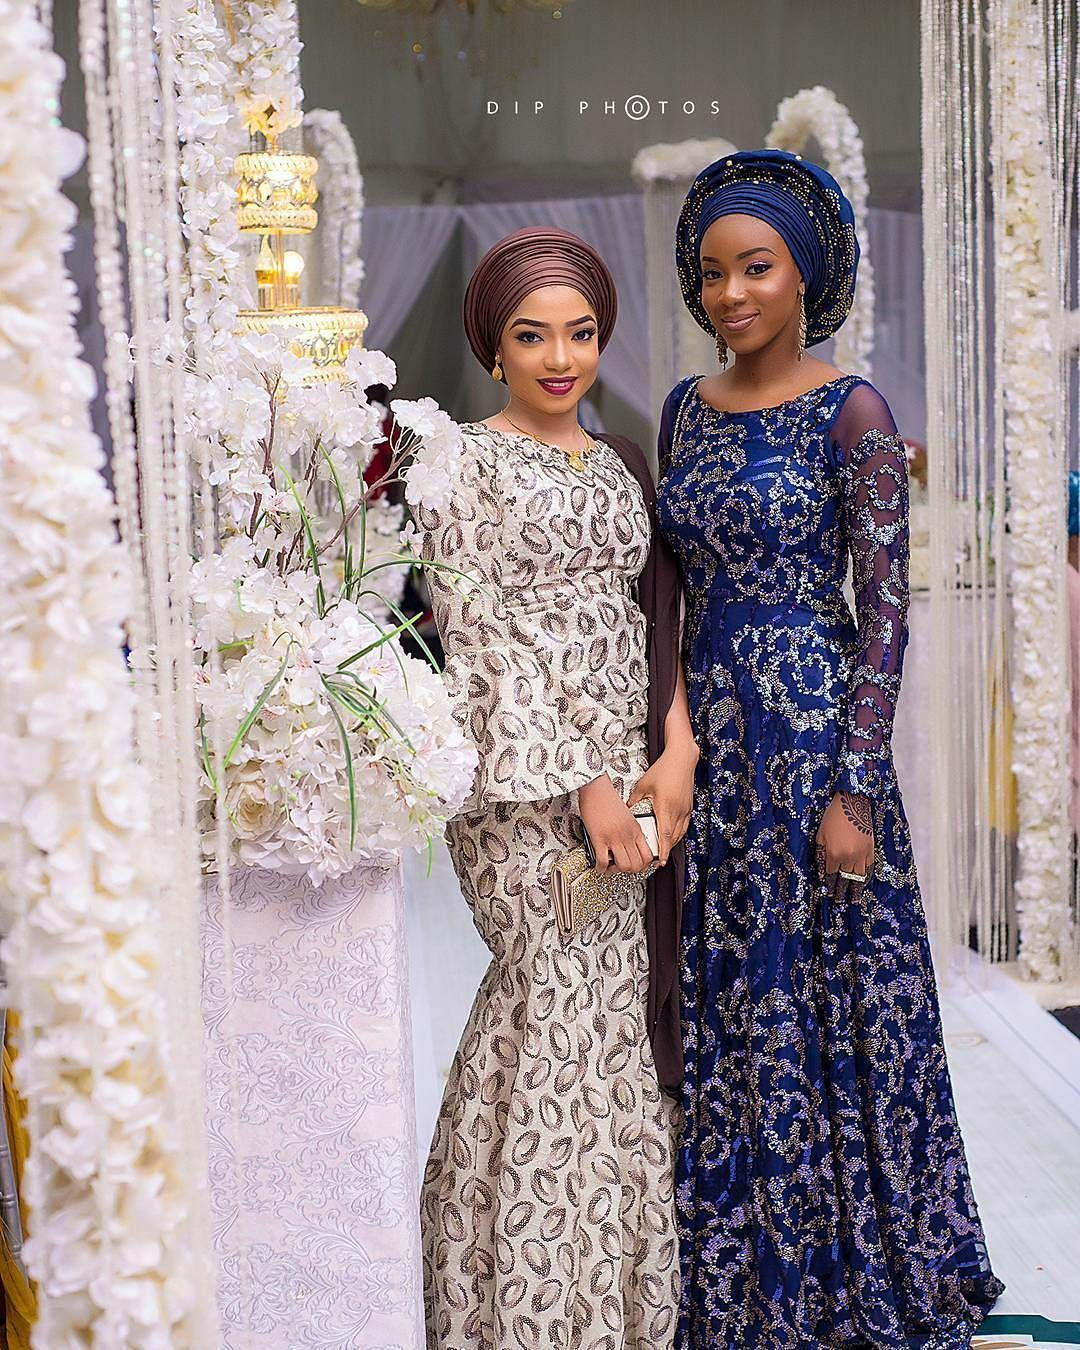 a6c5788b3cb2c african nigerian wedding party dress, sequence organza lace gown style,  glitter tulle lace for aso ebi, african women fashion styles